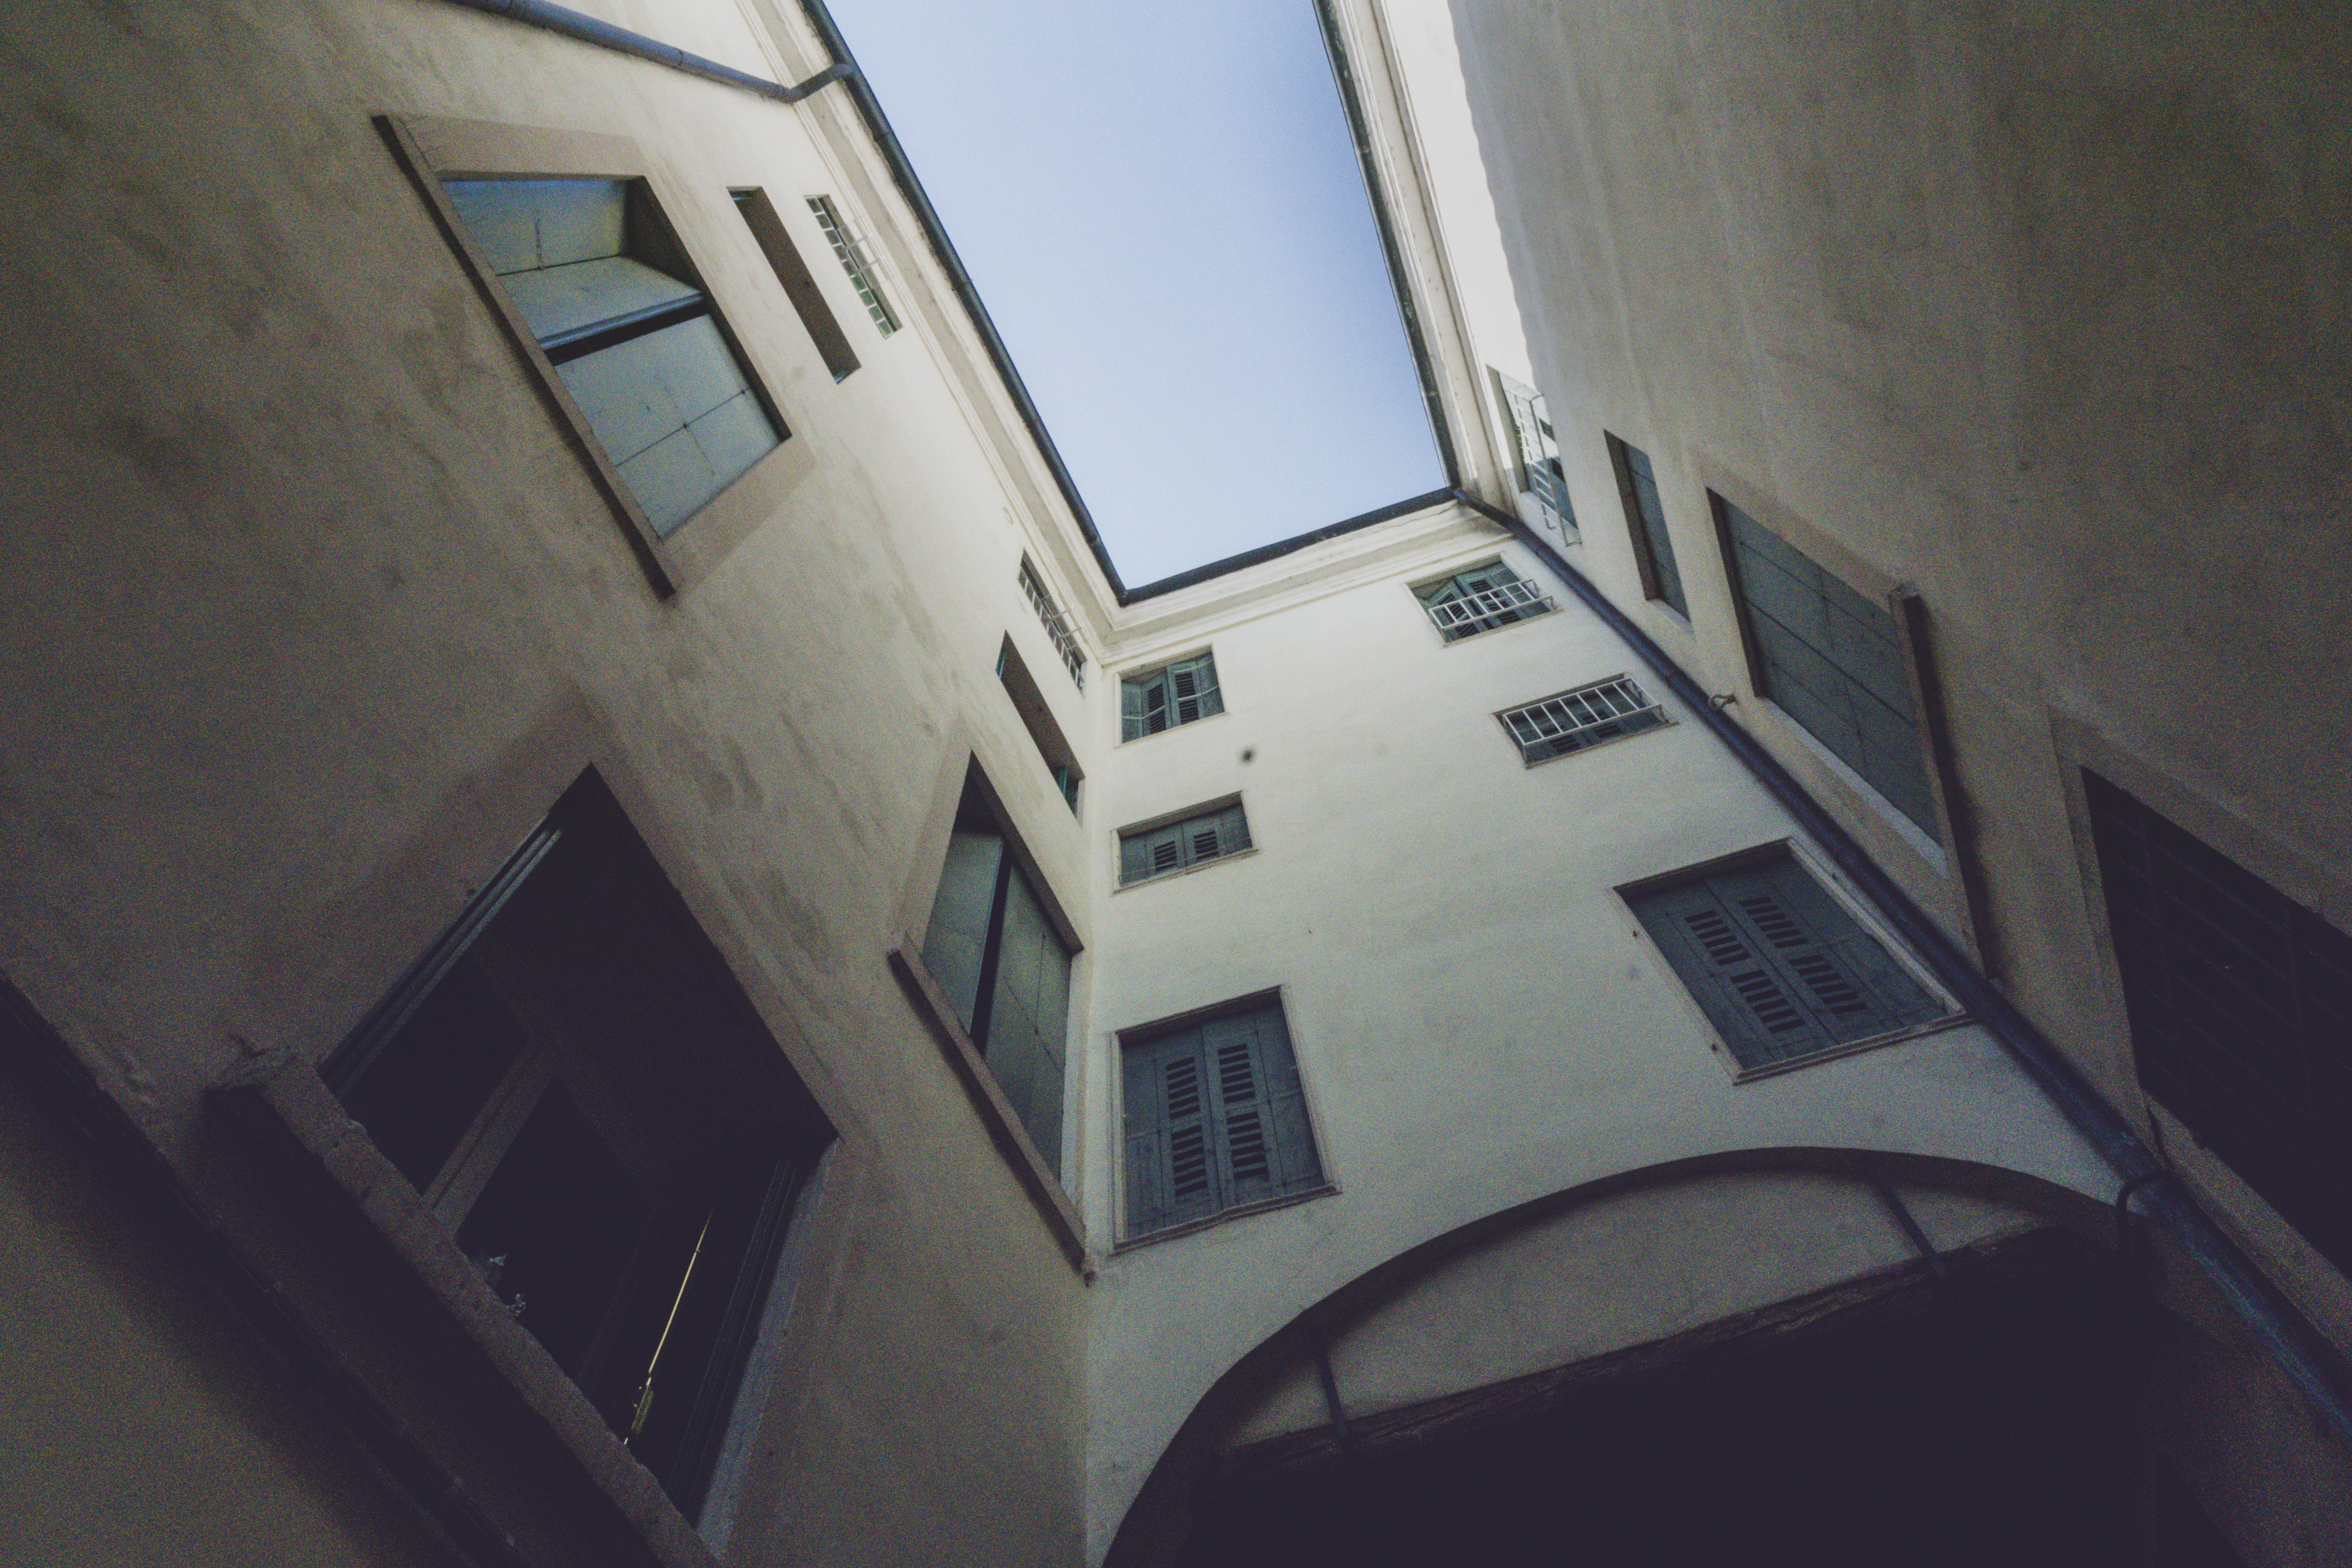 Worm's Eyeview of Building